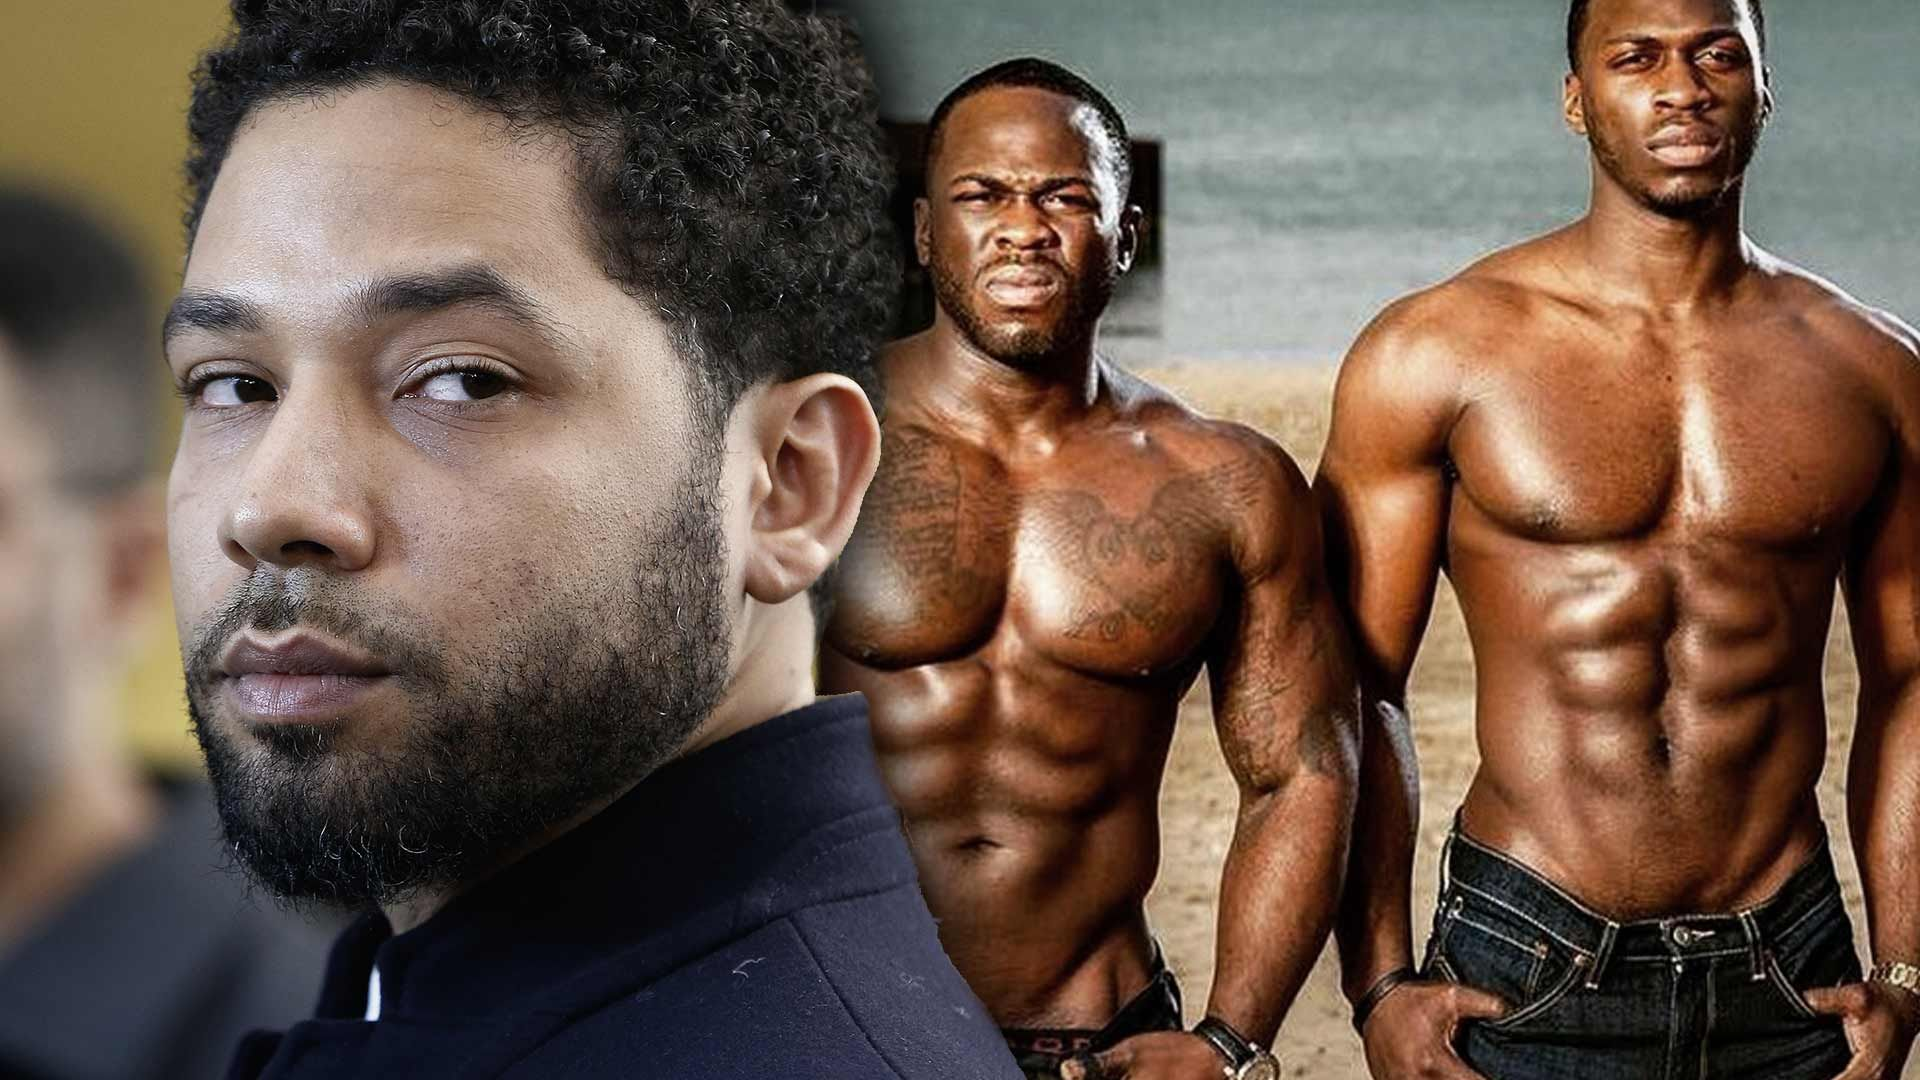 Jussie Smollett Had Sexual Relationship, Visited Bathhouse with Alleged 'Attacker'